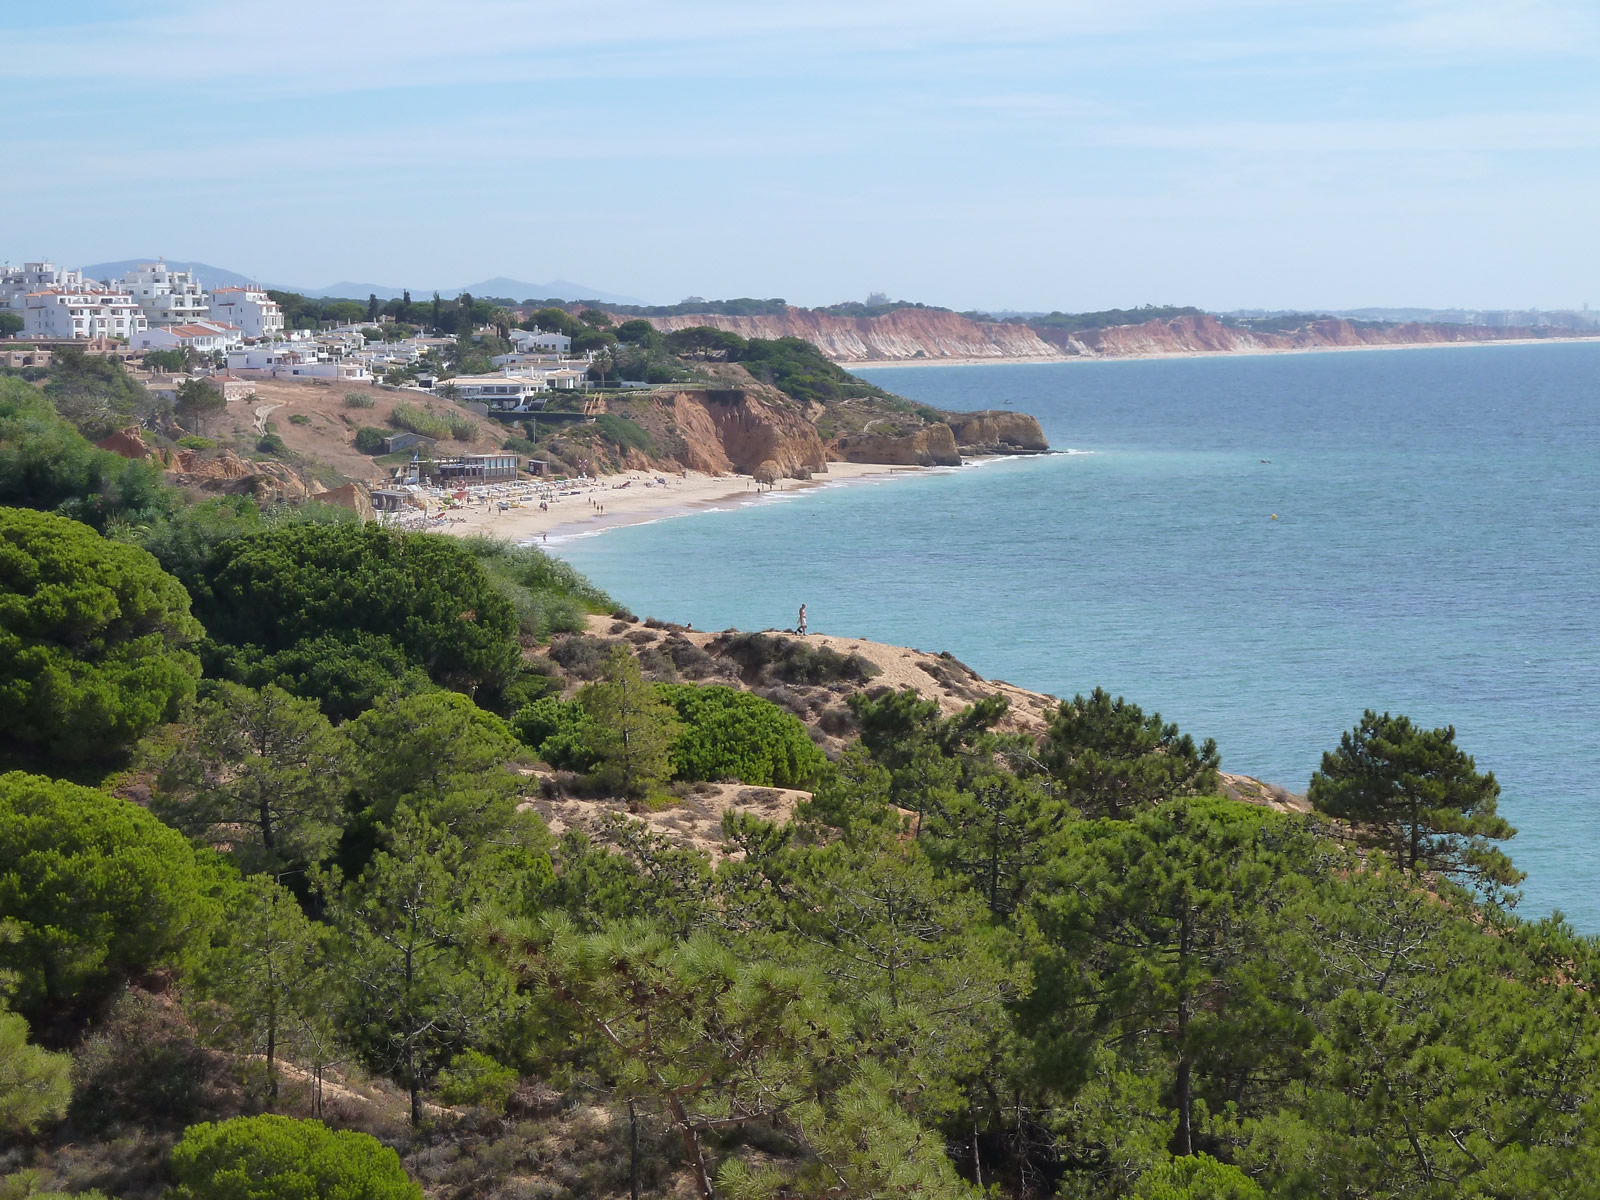 West of Albufeira, the beautiful coastline continues, with many superb beaches.